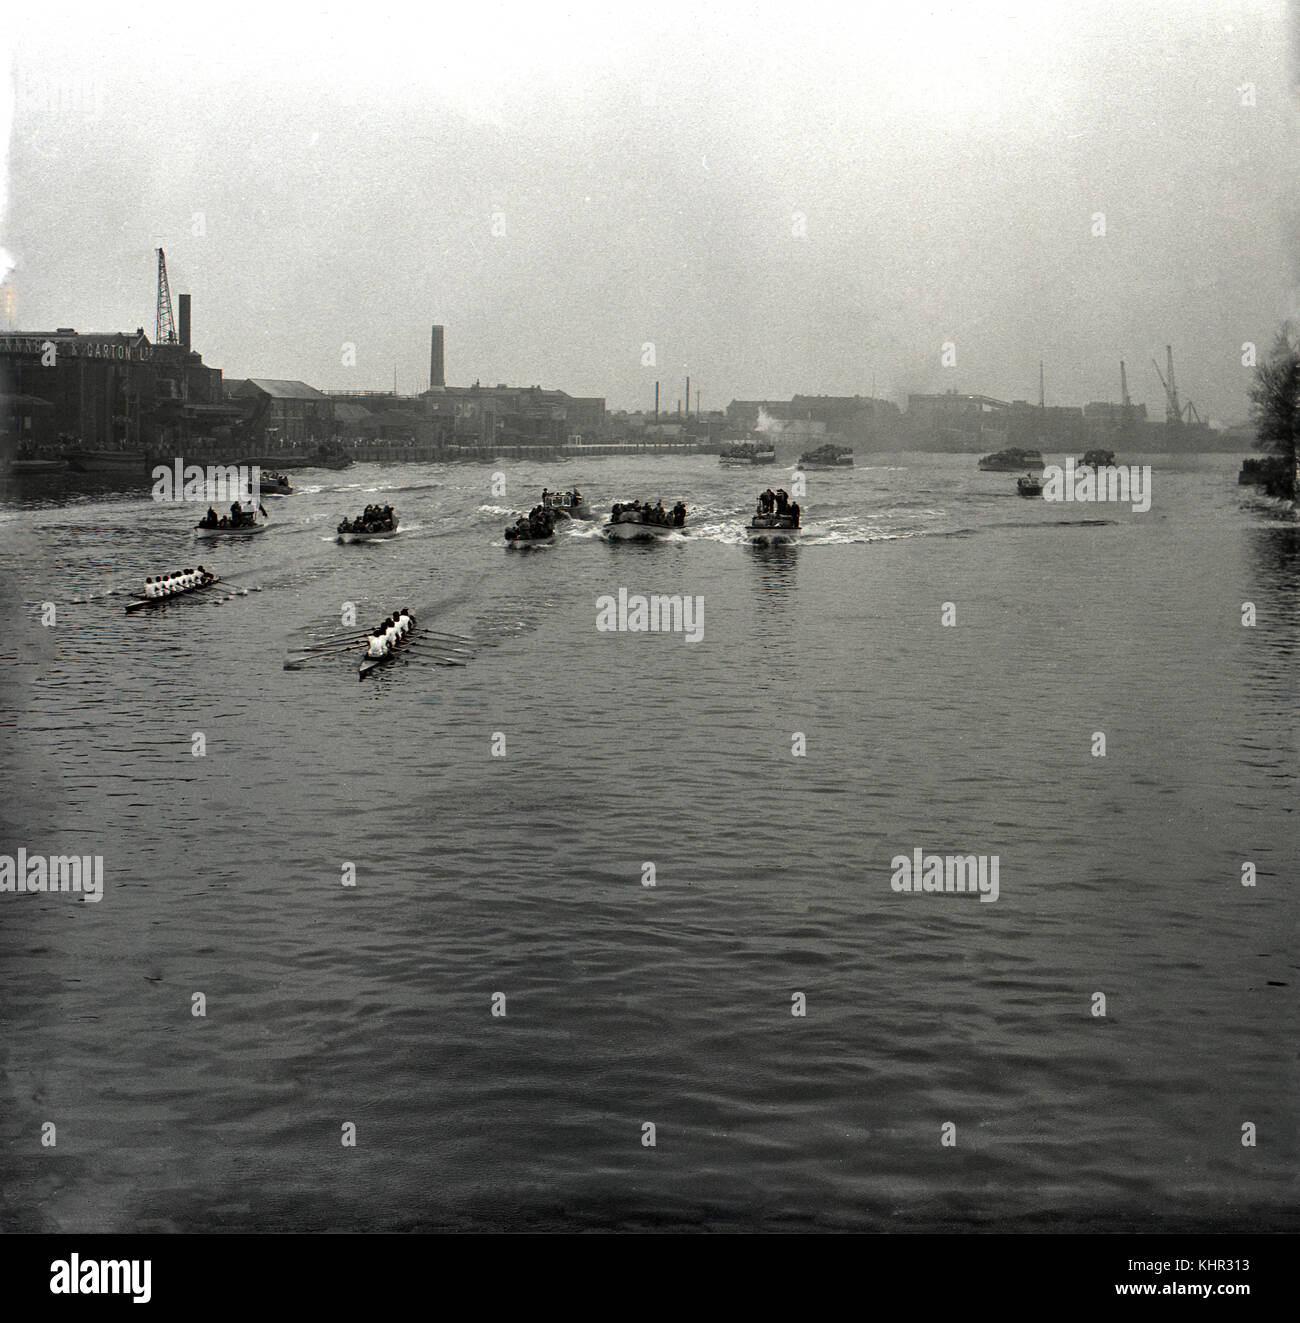 1950s, historial picture showing the boats and flotilla of the famous university rowing race, the Oxford & Cambridge - Stock Image